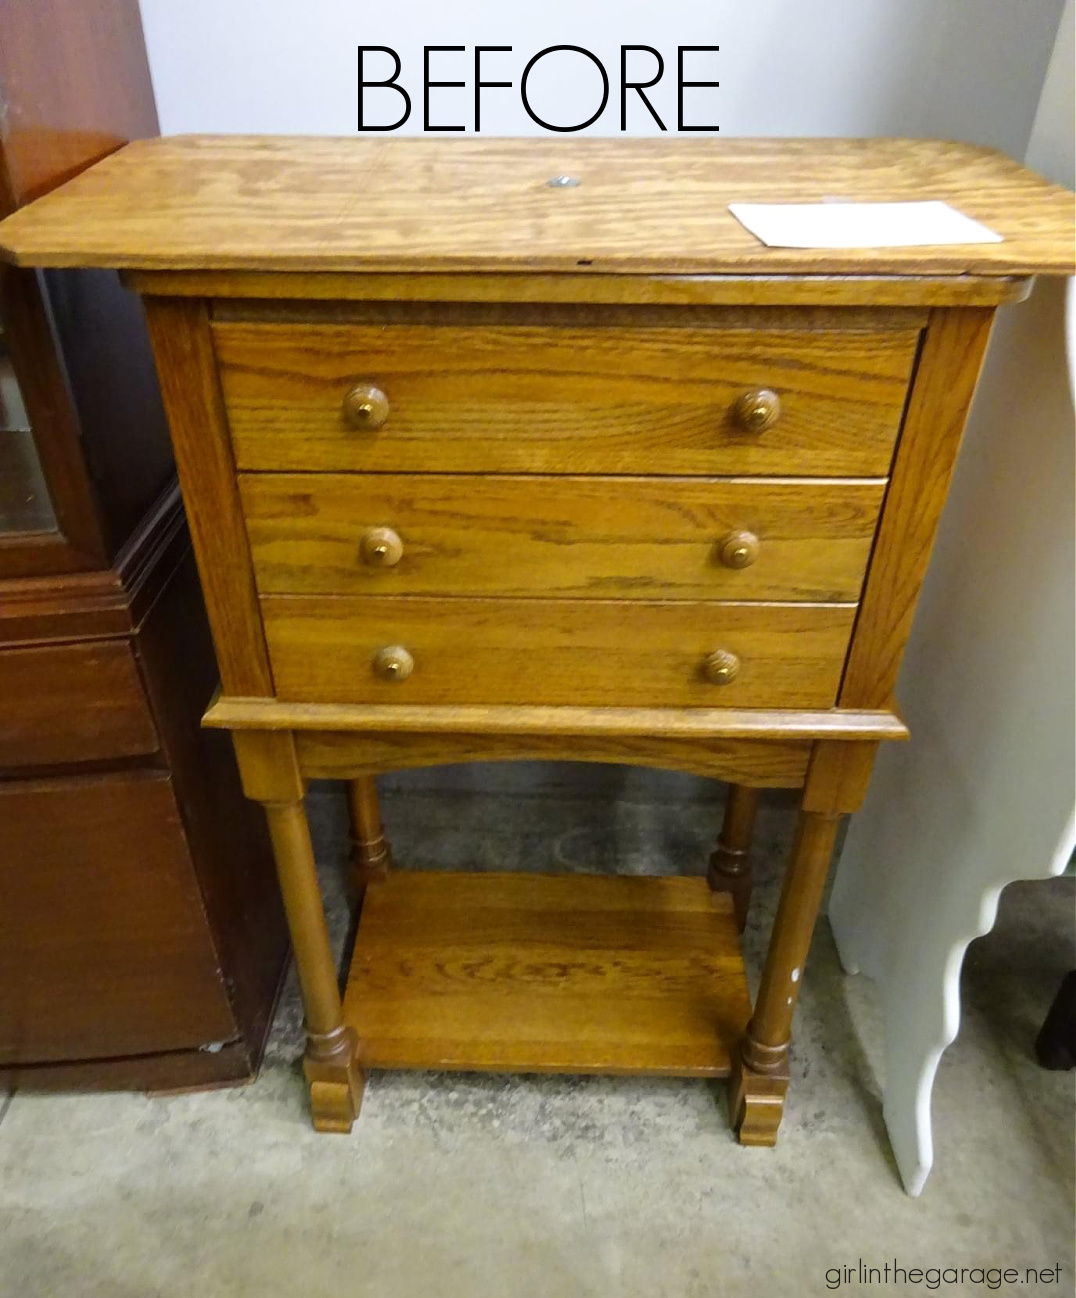 A thrifted cabinet updated in Rustoleum Chalked Paint - Honest review by Girl in the Garage